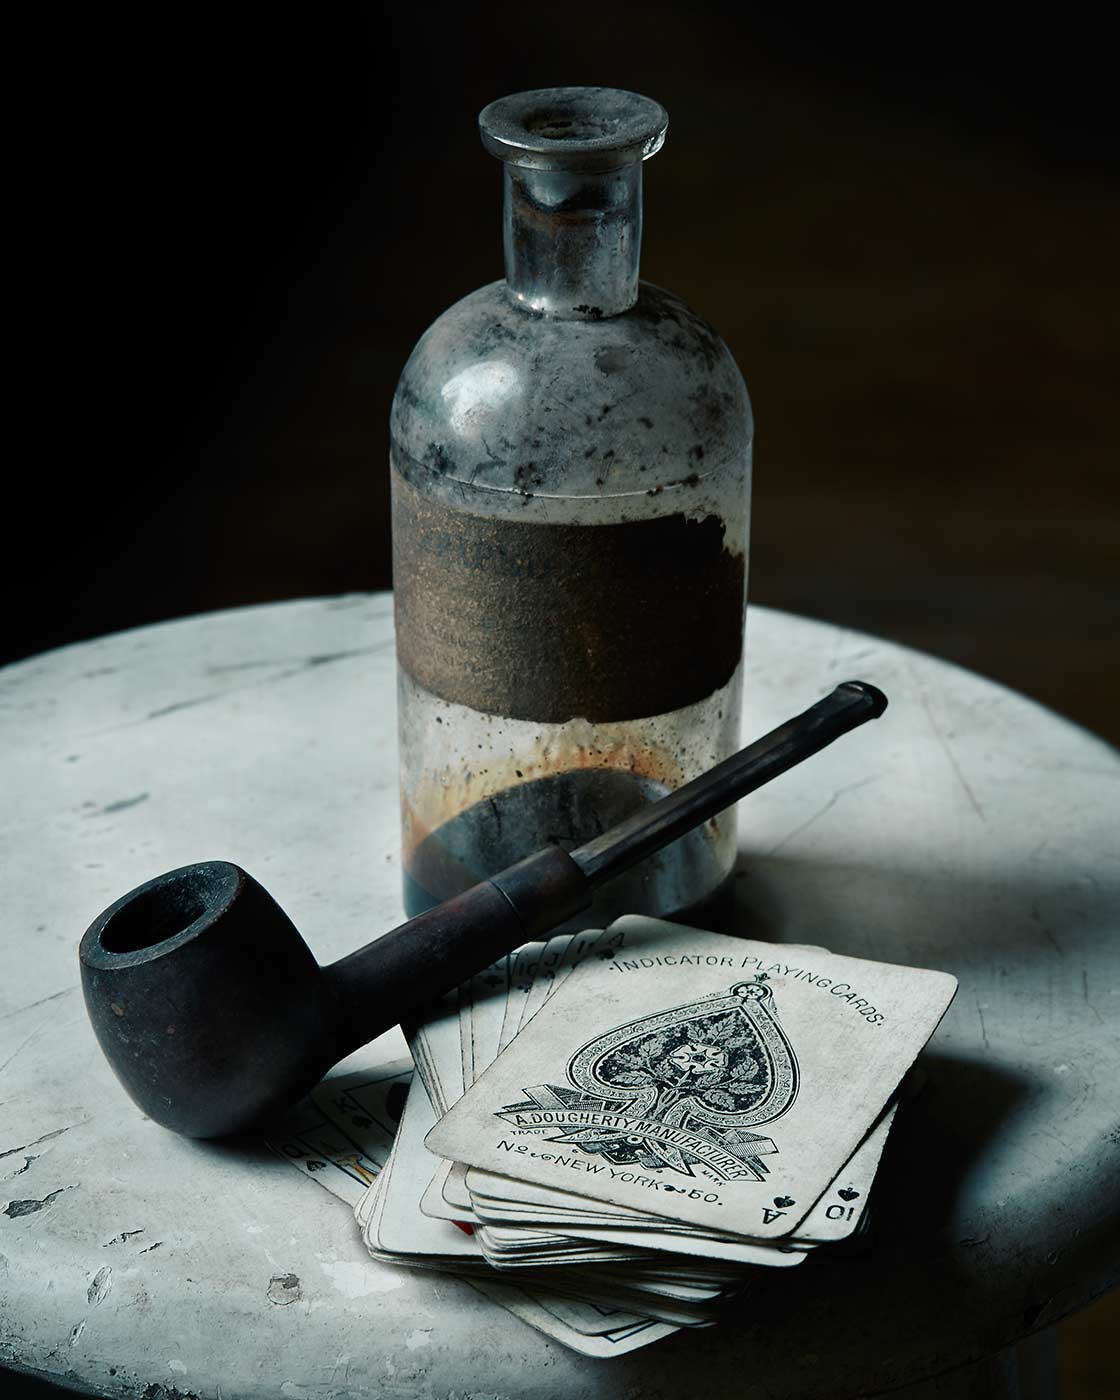 Dark still life photo with cards and pipe.